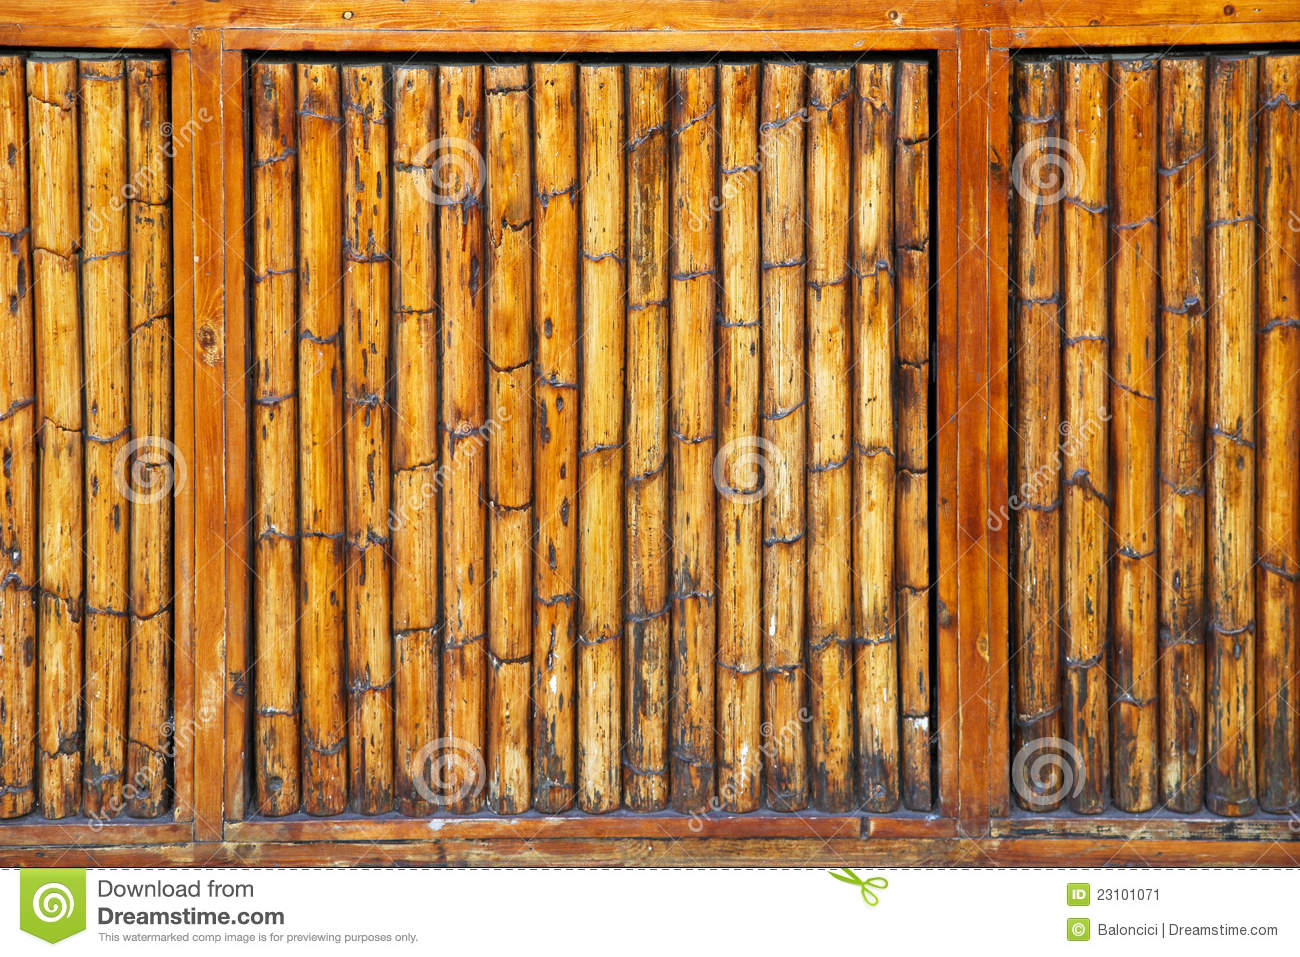 Bamboo wall stock image of pattern wooden sticks